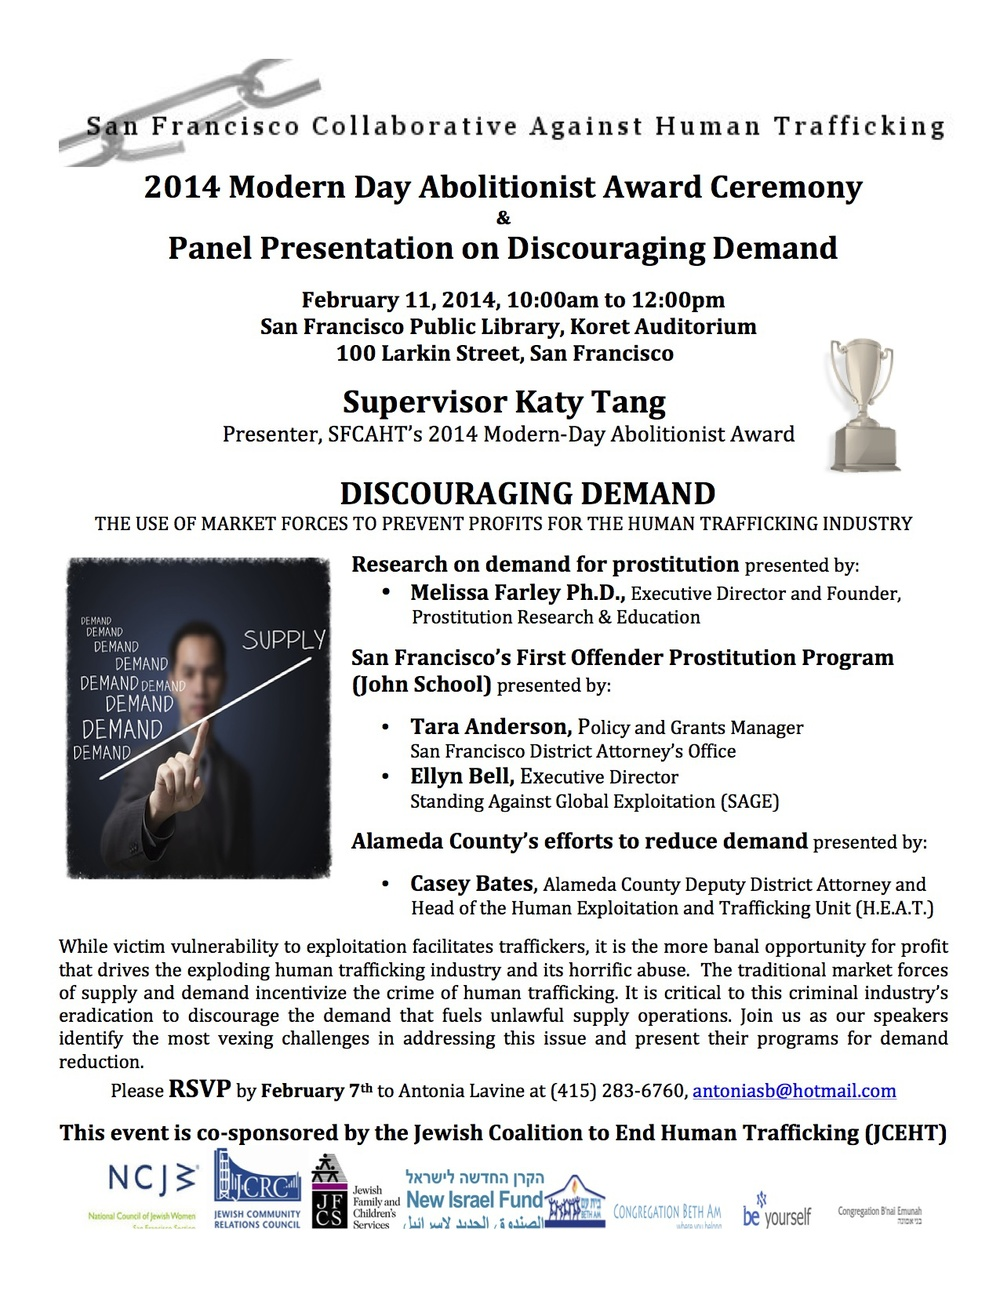 Flyer7PDF_Modern Day Abolitionist Award Ceremony&Panel_Feb 11, 2014_final 2 copy.jpg